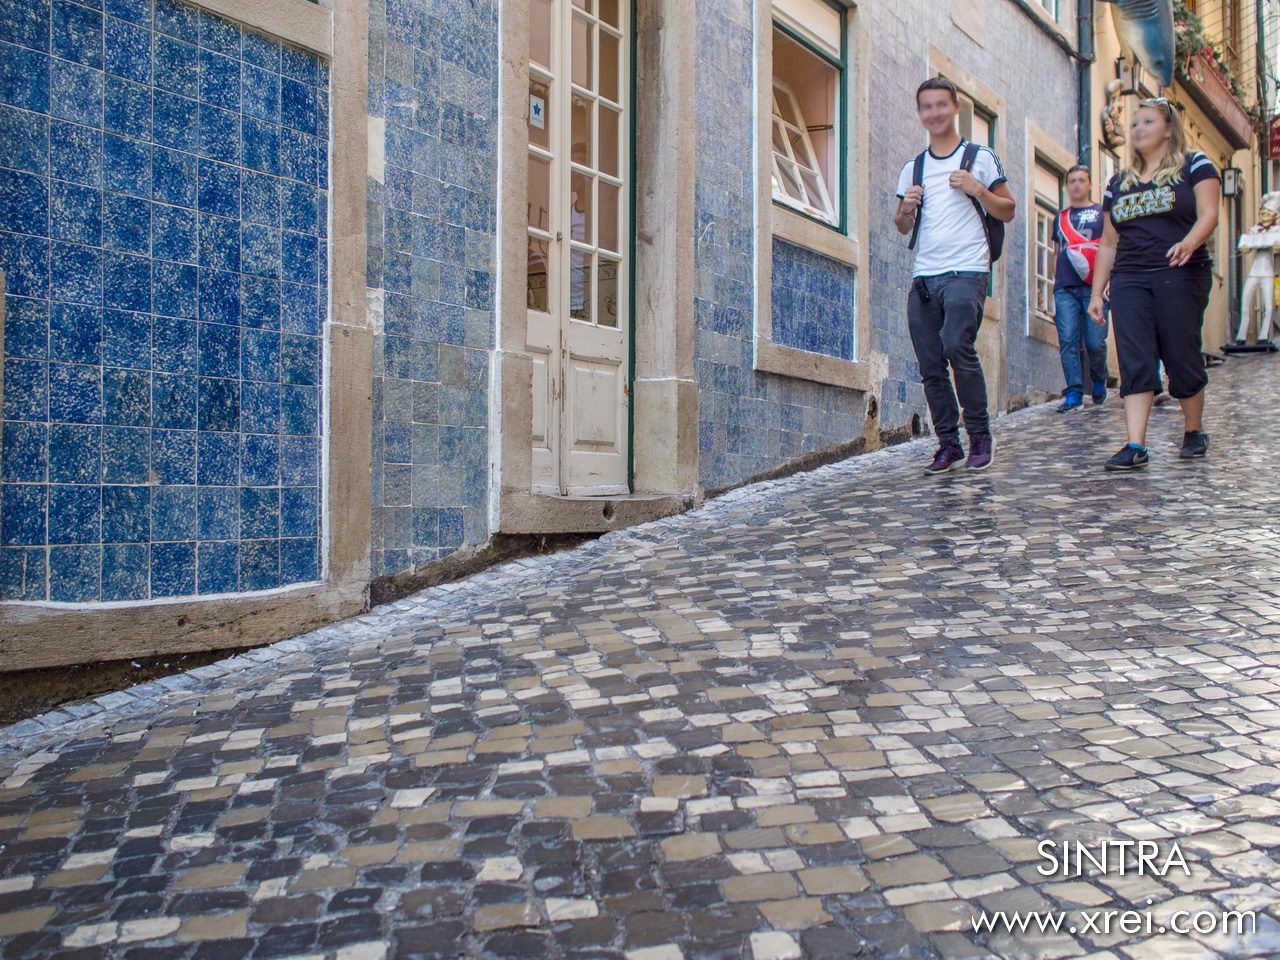 The streets of SIntras were restored in the summer of 2020, with traditional Portuguese stone floors, however in this image we still have the old floor worn by the use of passerby visitors